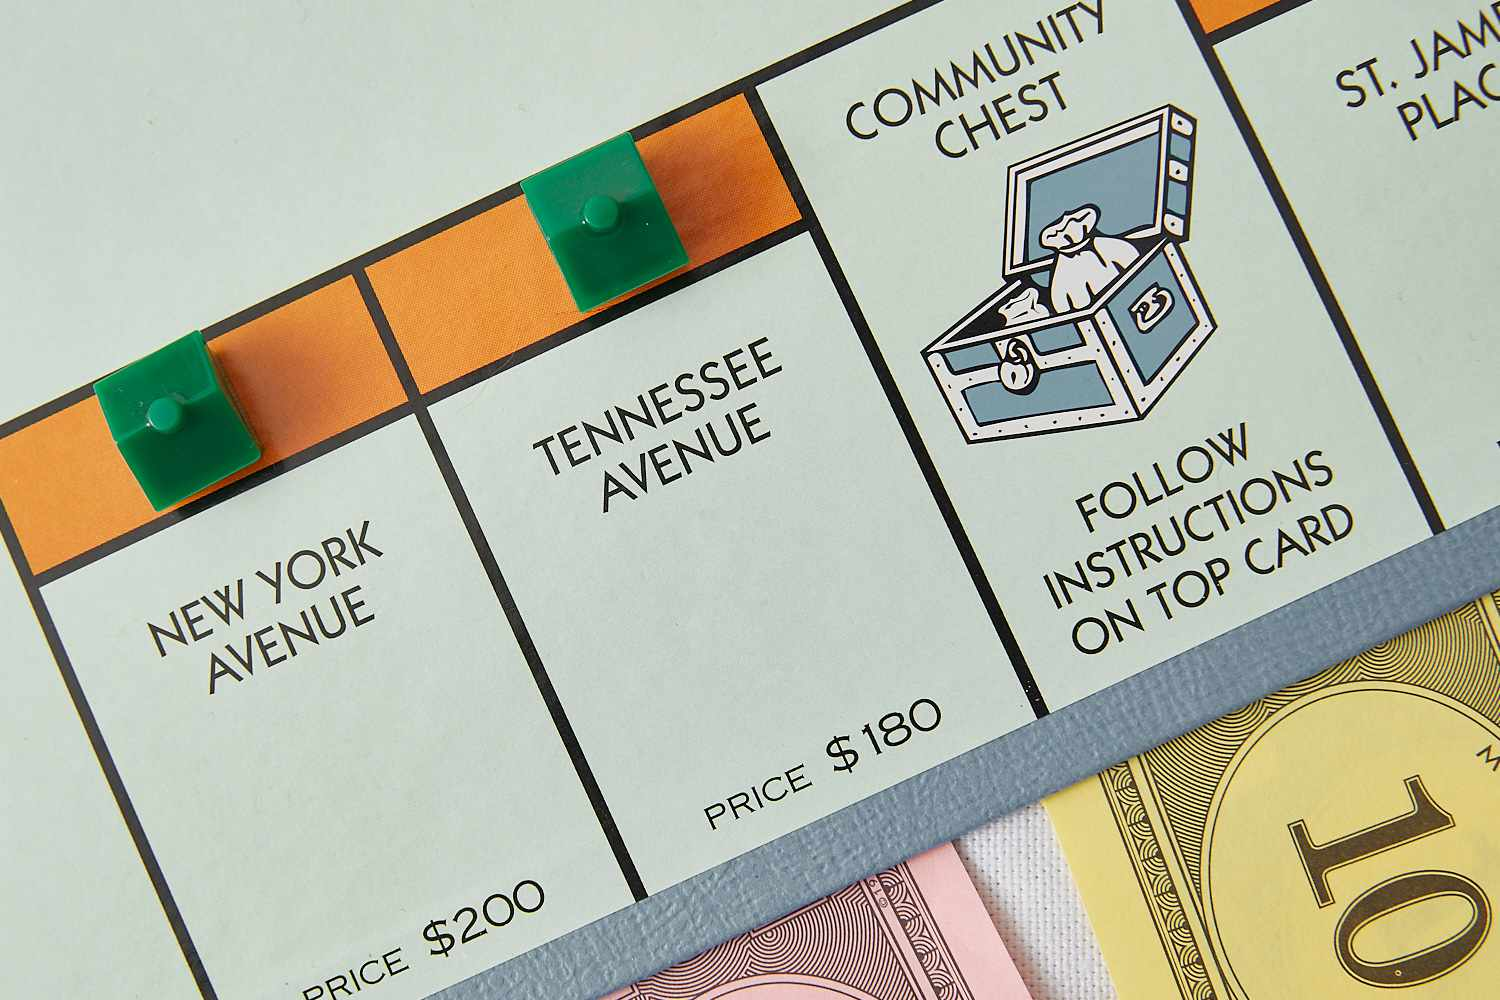 Monopoly Tennessee Avenue